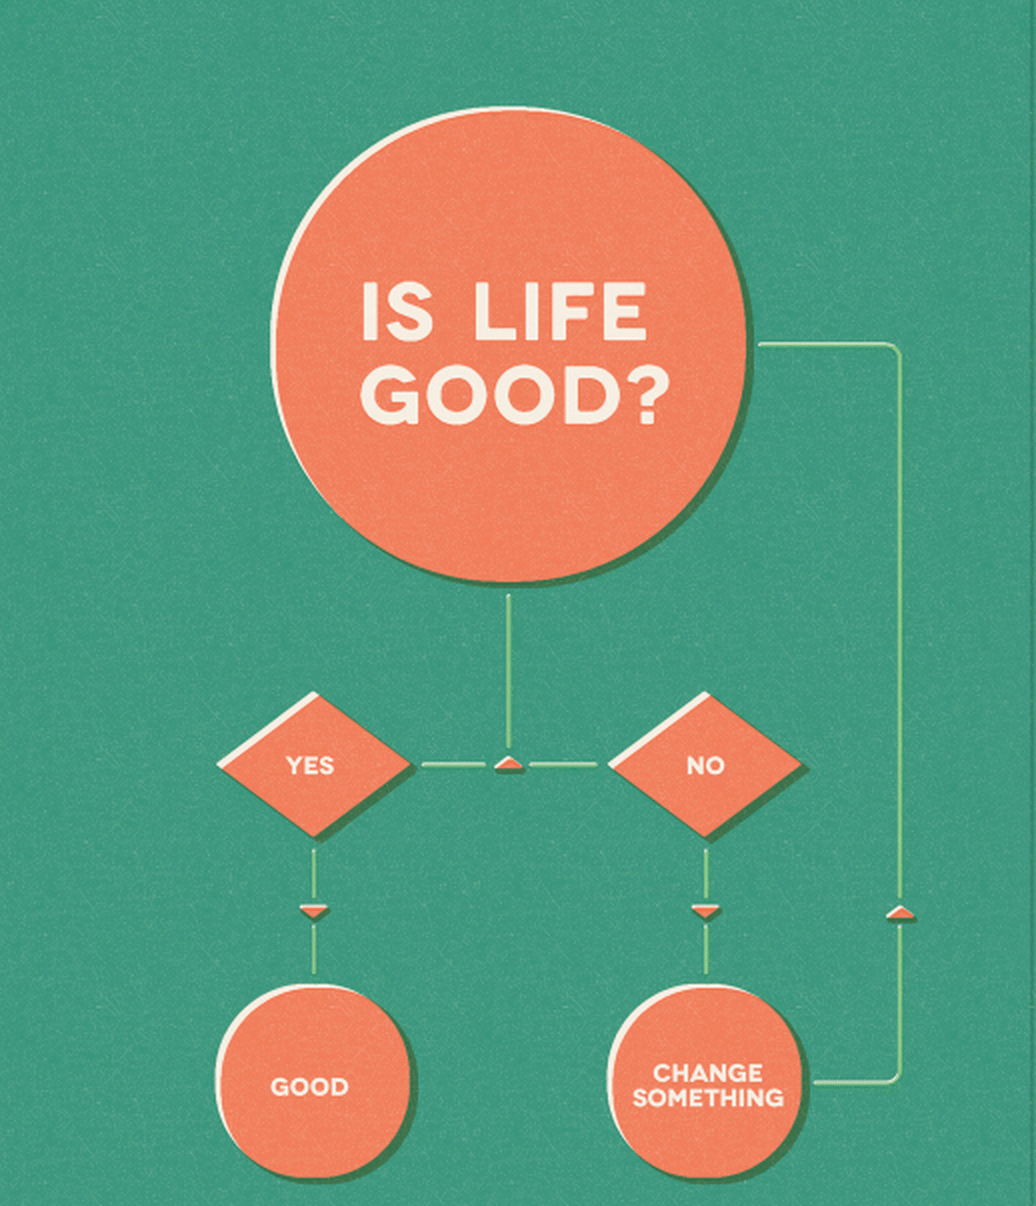 Is Life Good infographic